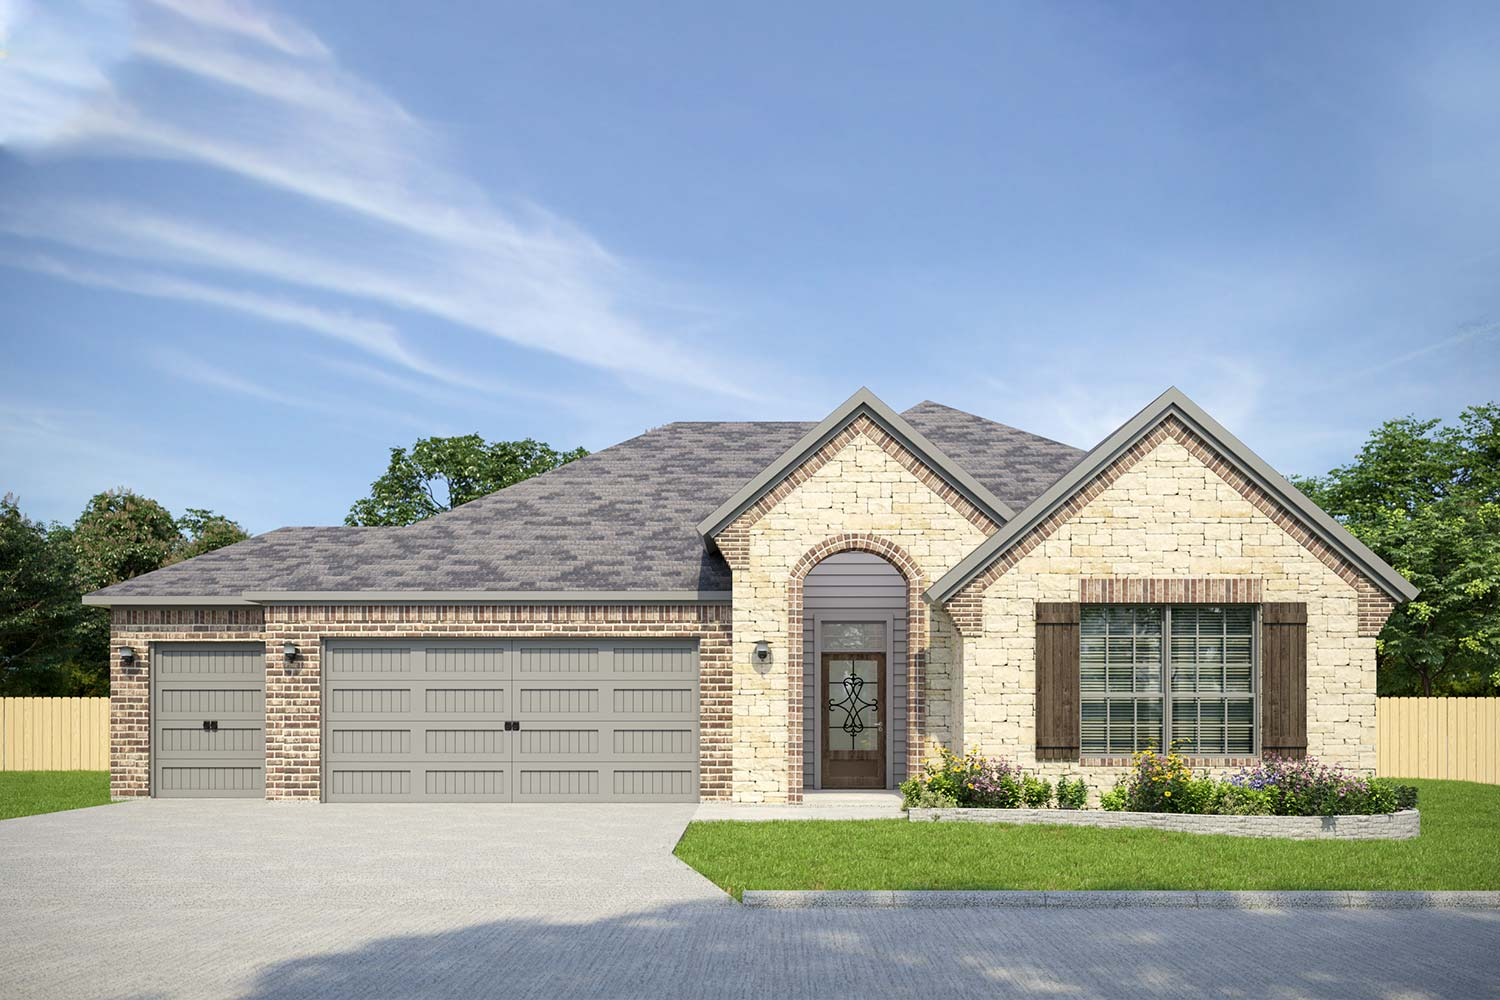 New Homes for Sale in Belton, TX | 3129 Trinity Dr